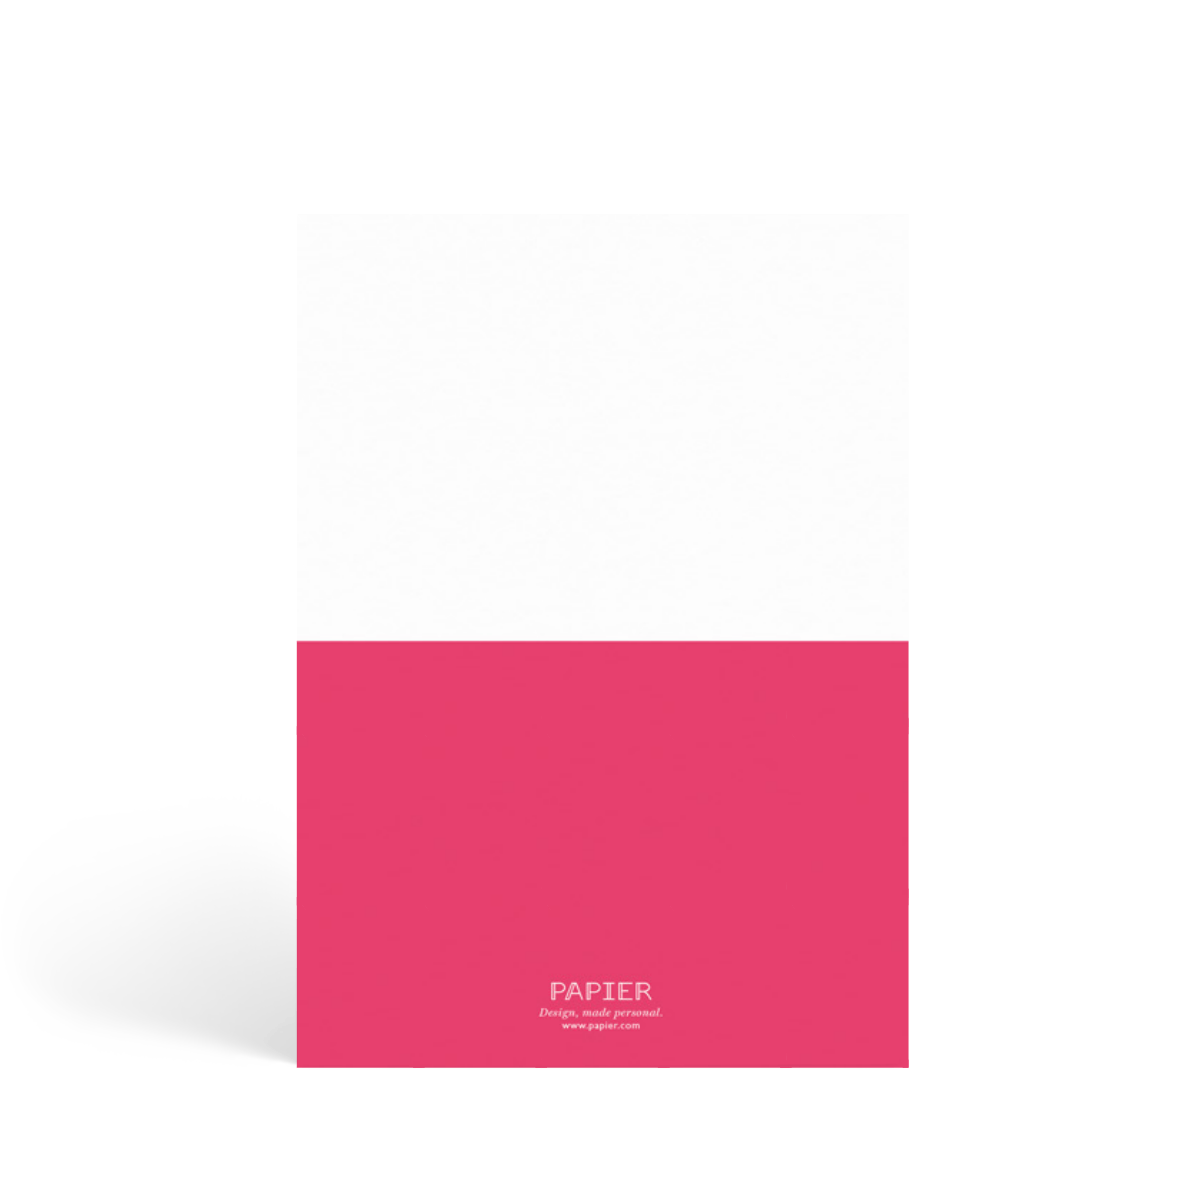 Https%3a%2f%2fwww.papier.com%2fproduct image%2f63998%2f5%2fdemi hot pink 15023 back 1568041461.png?ixlib=rb 1.1